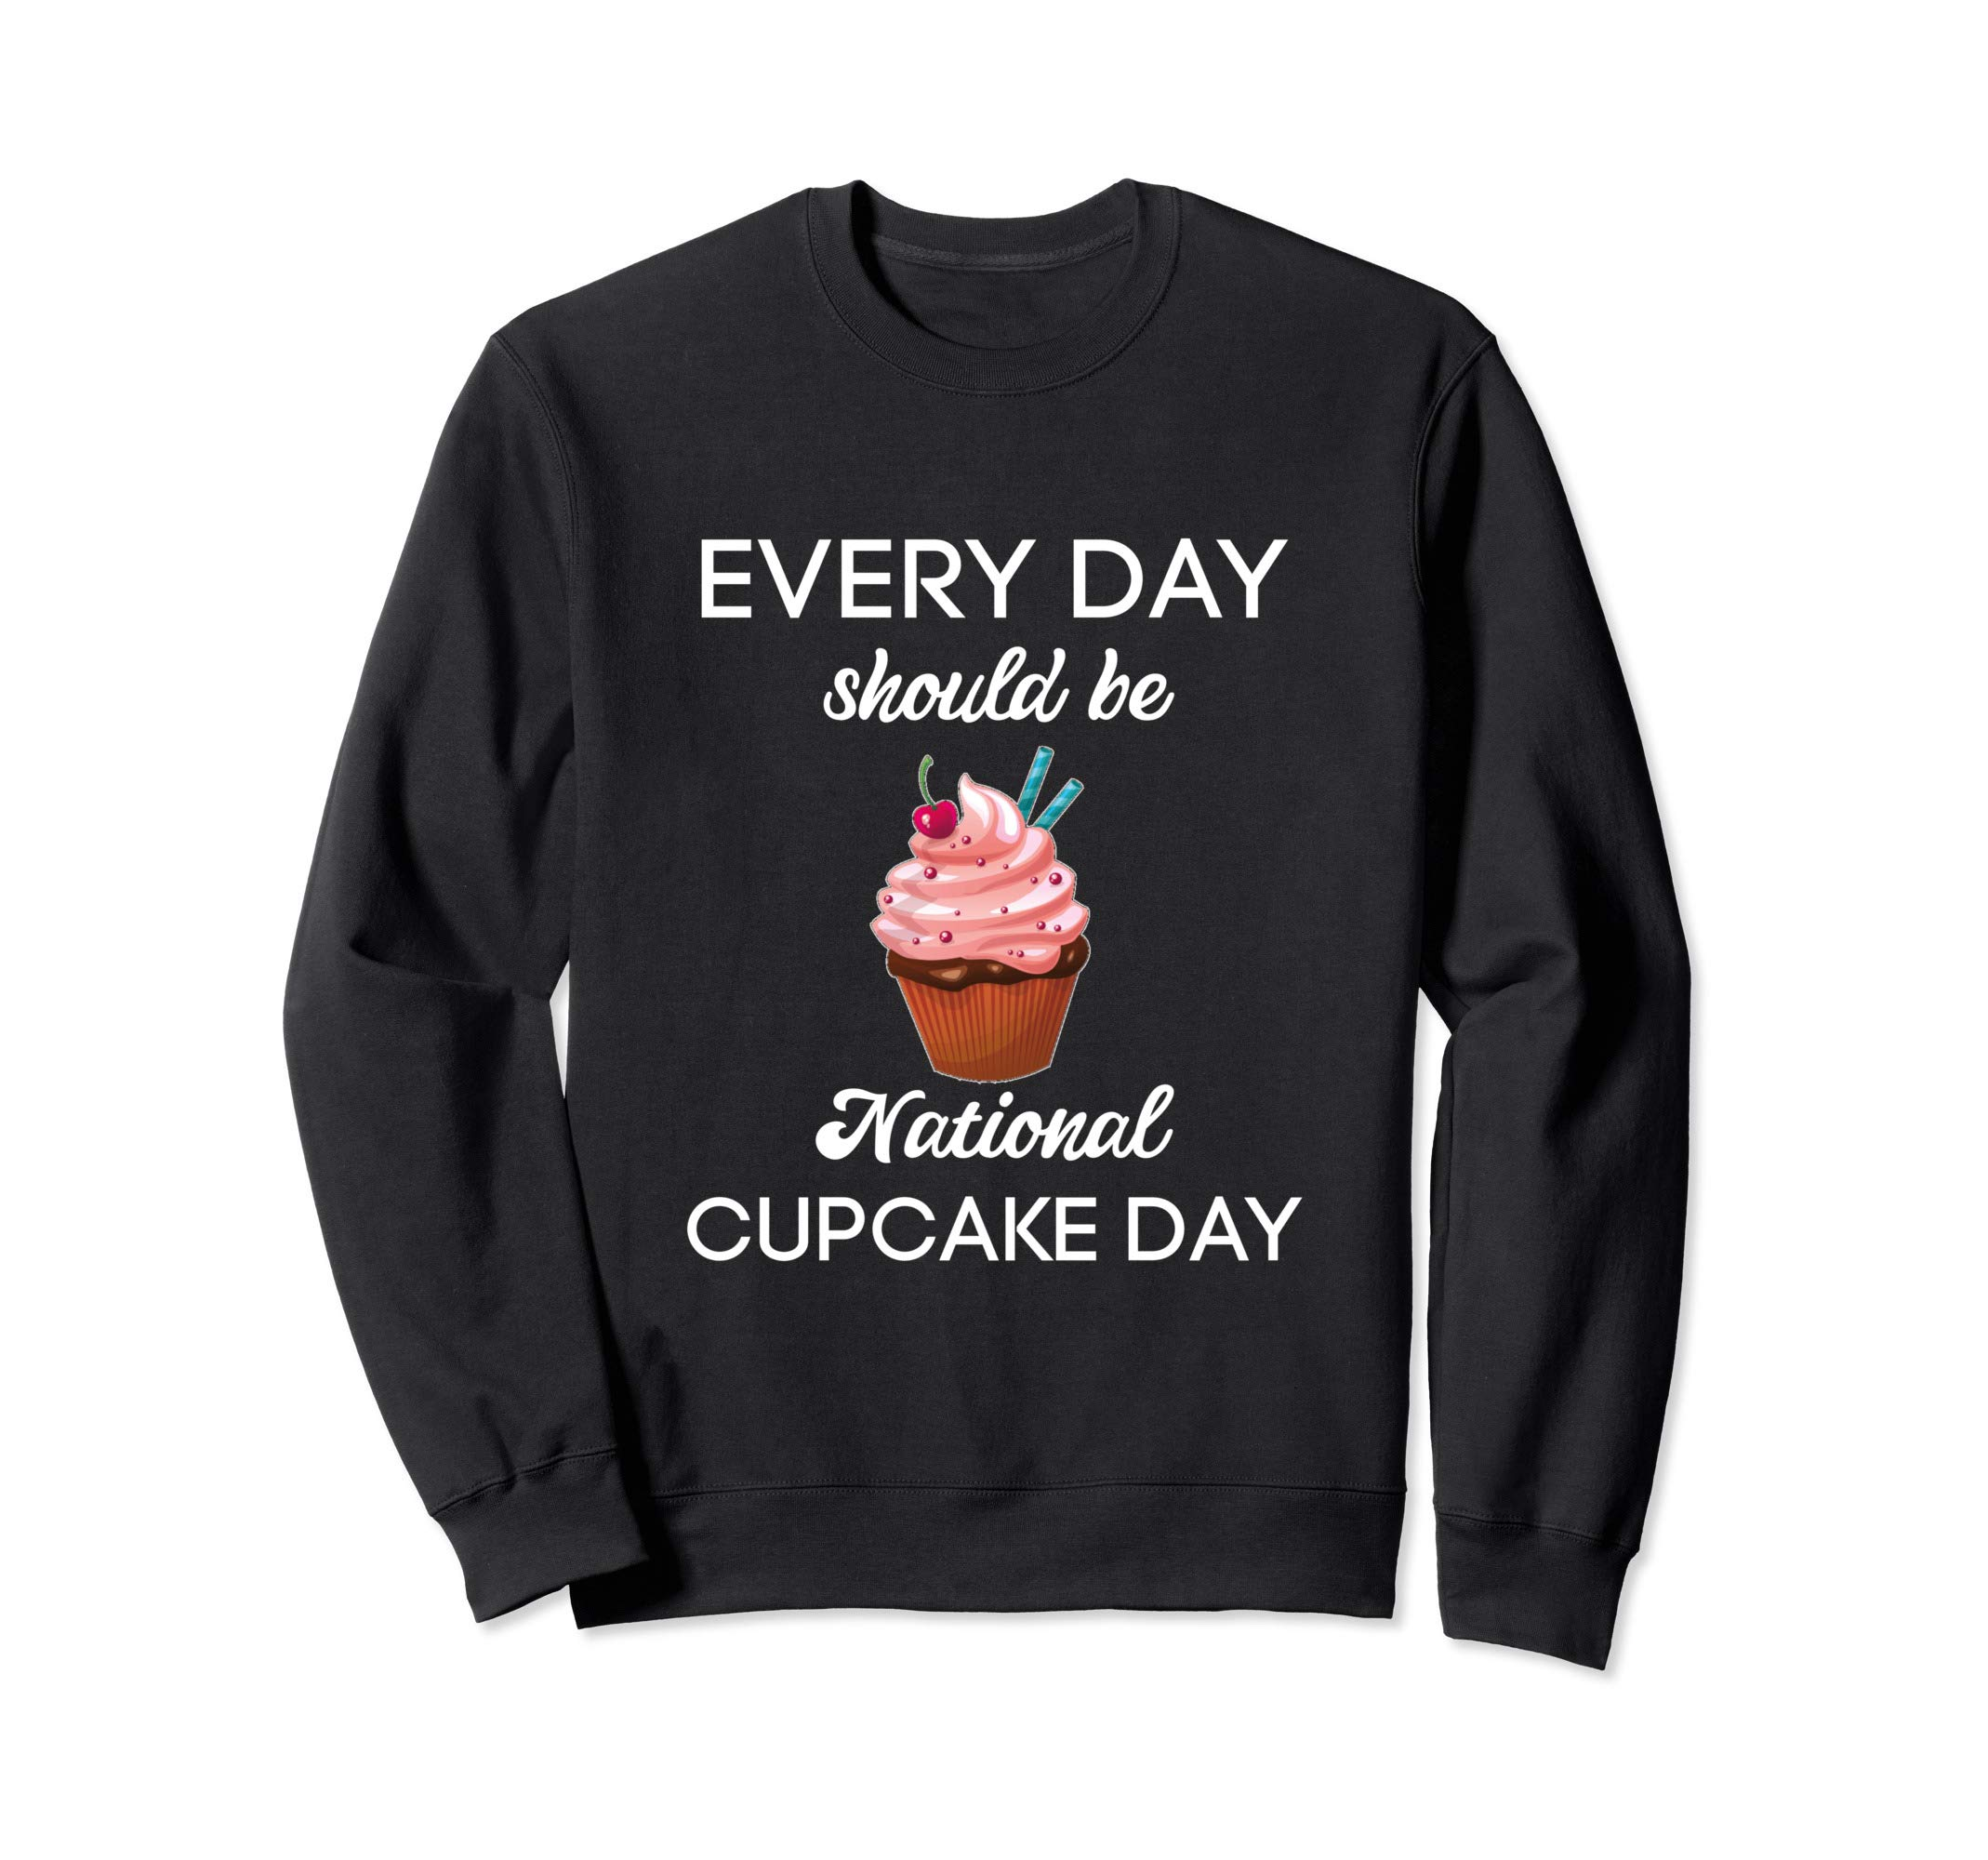 Everyday Should Be National Cupcake Day Shirt, Cupcake Tee Sweatshirt by National Food Holiday Tees